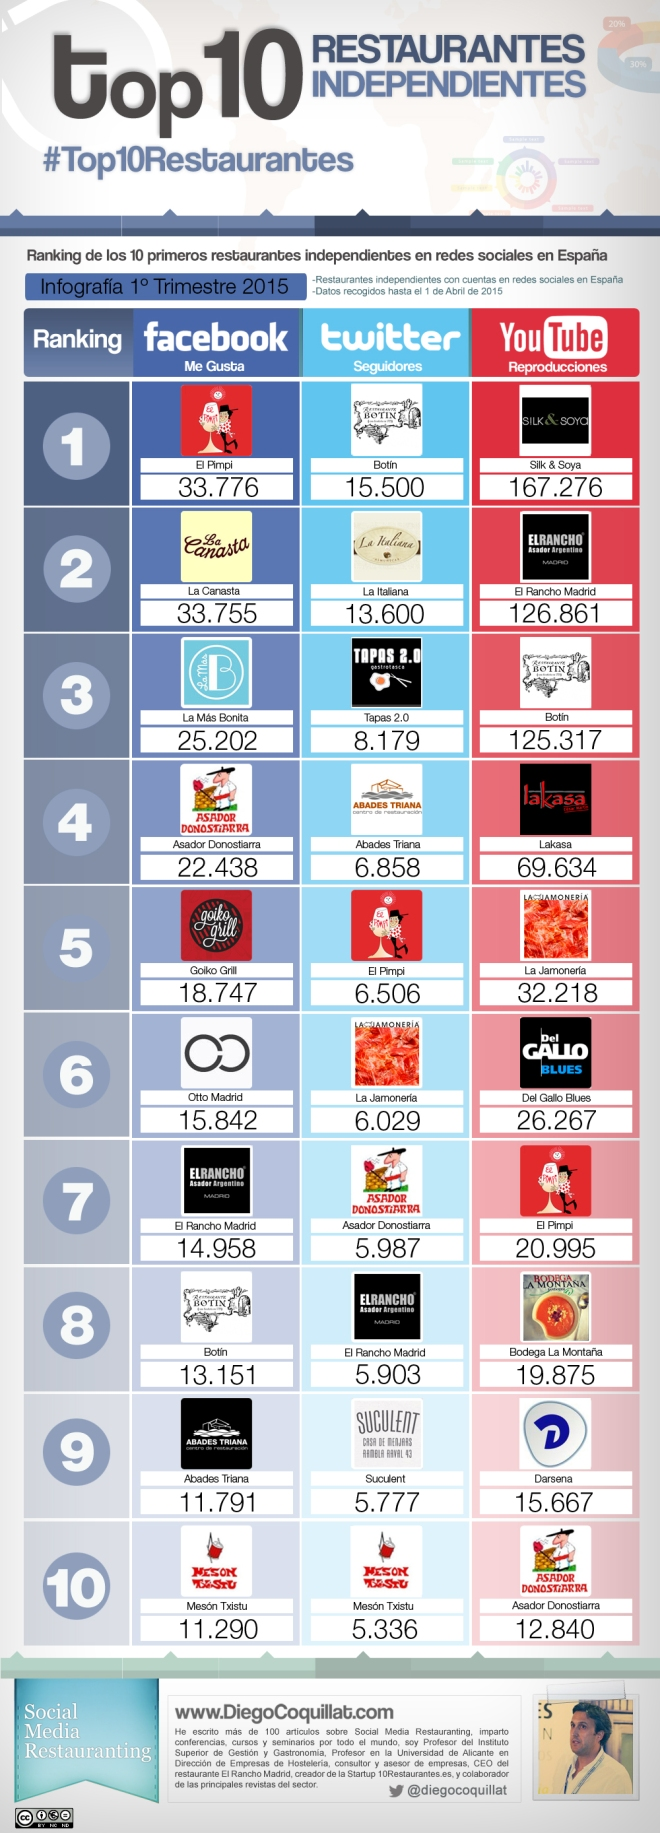 Top 10 restaurantes independientes en Redes Sociales España (1T/2015)